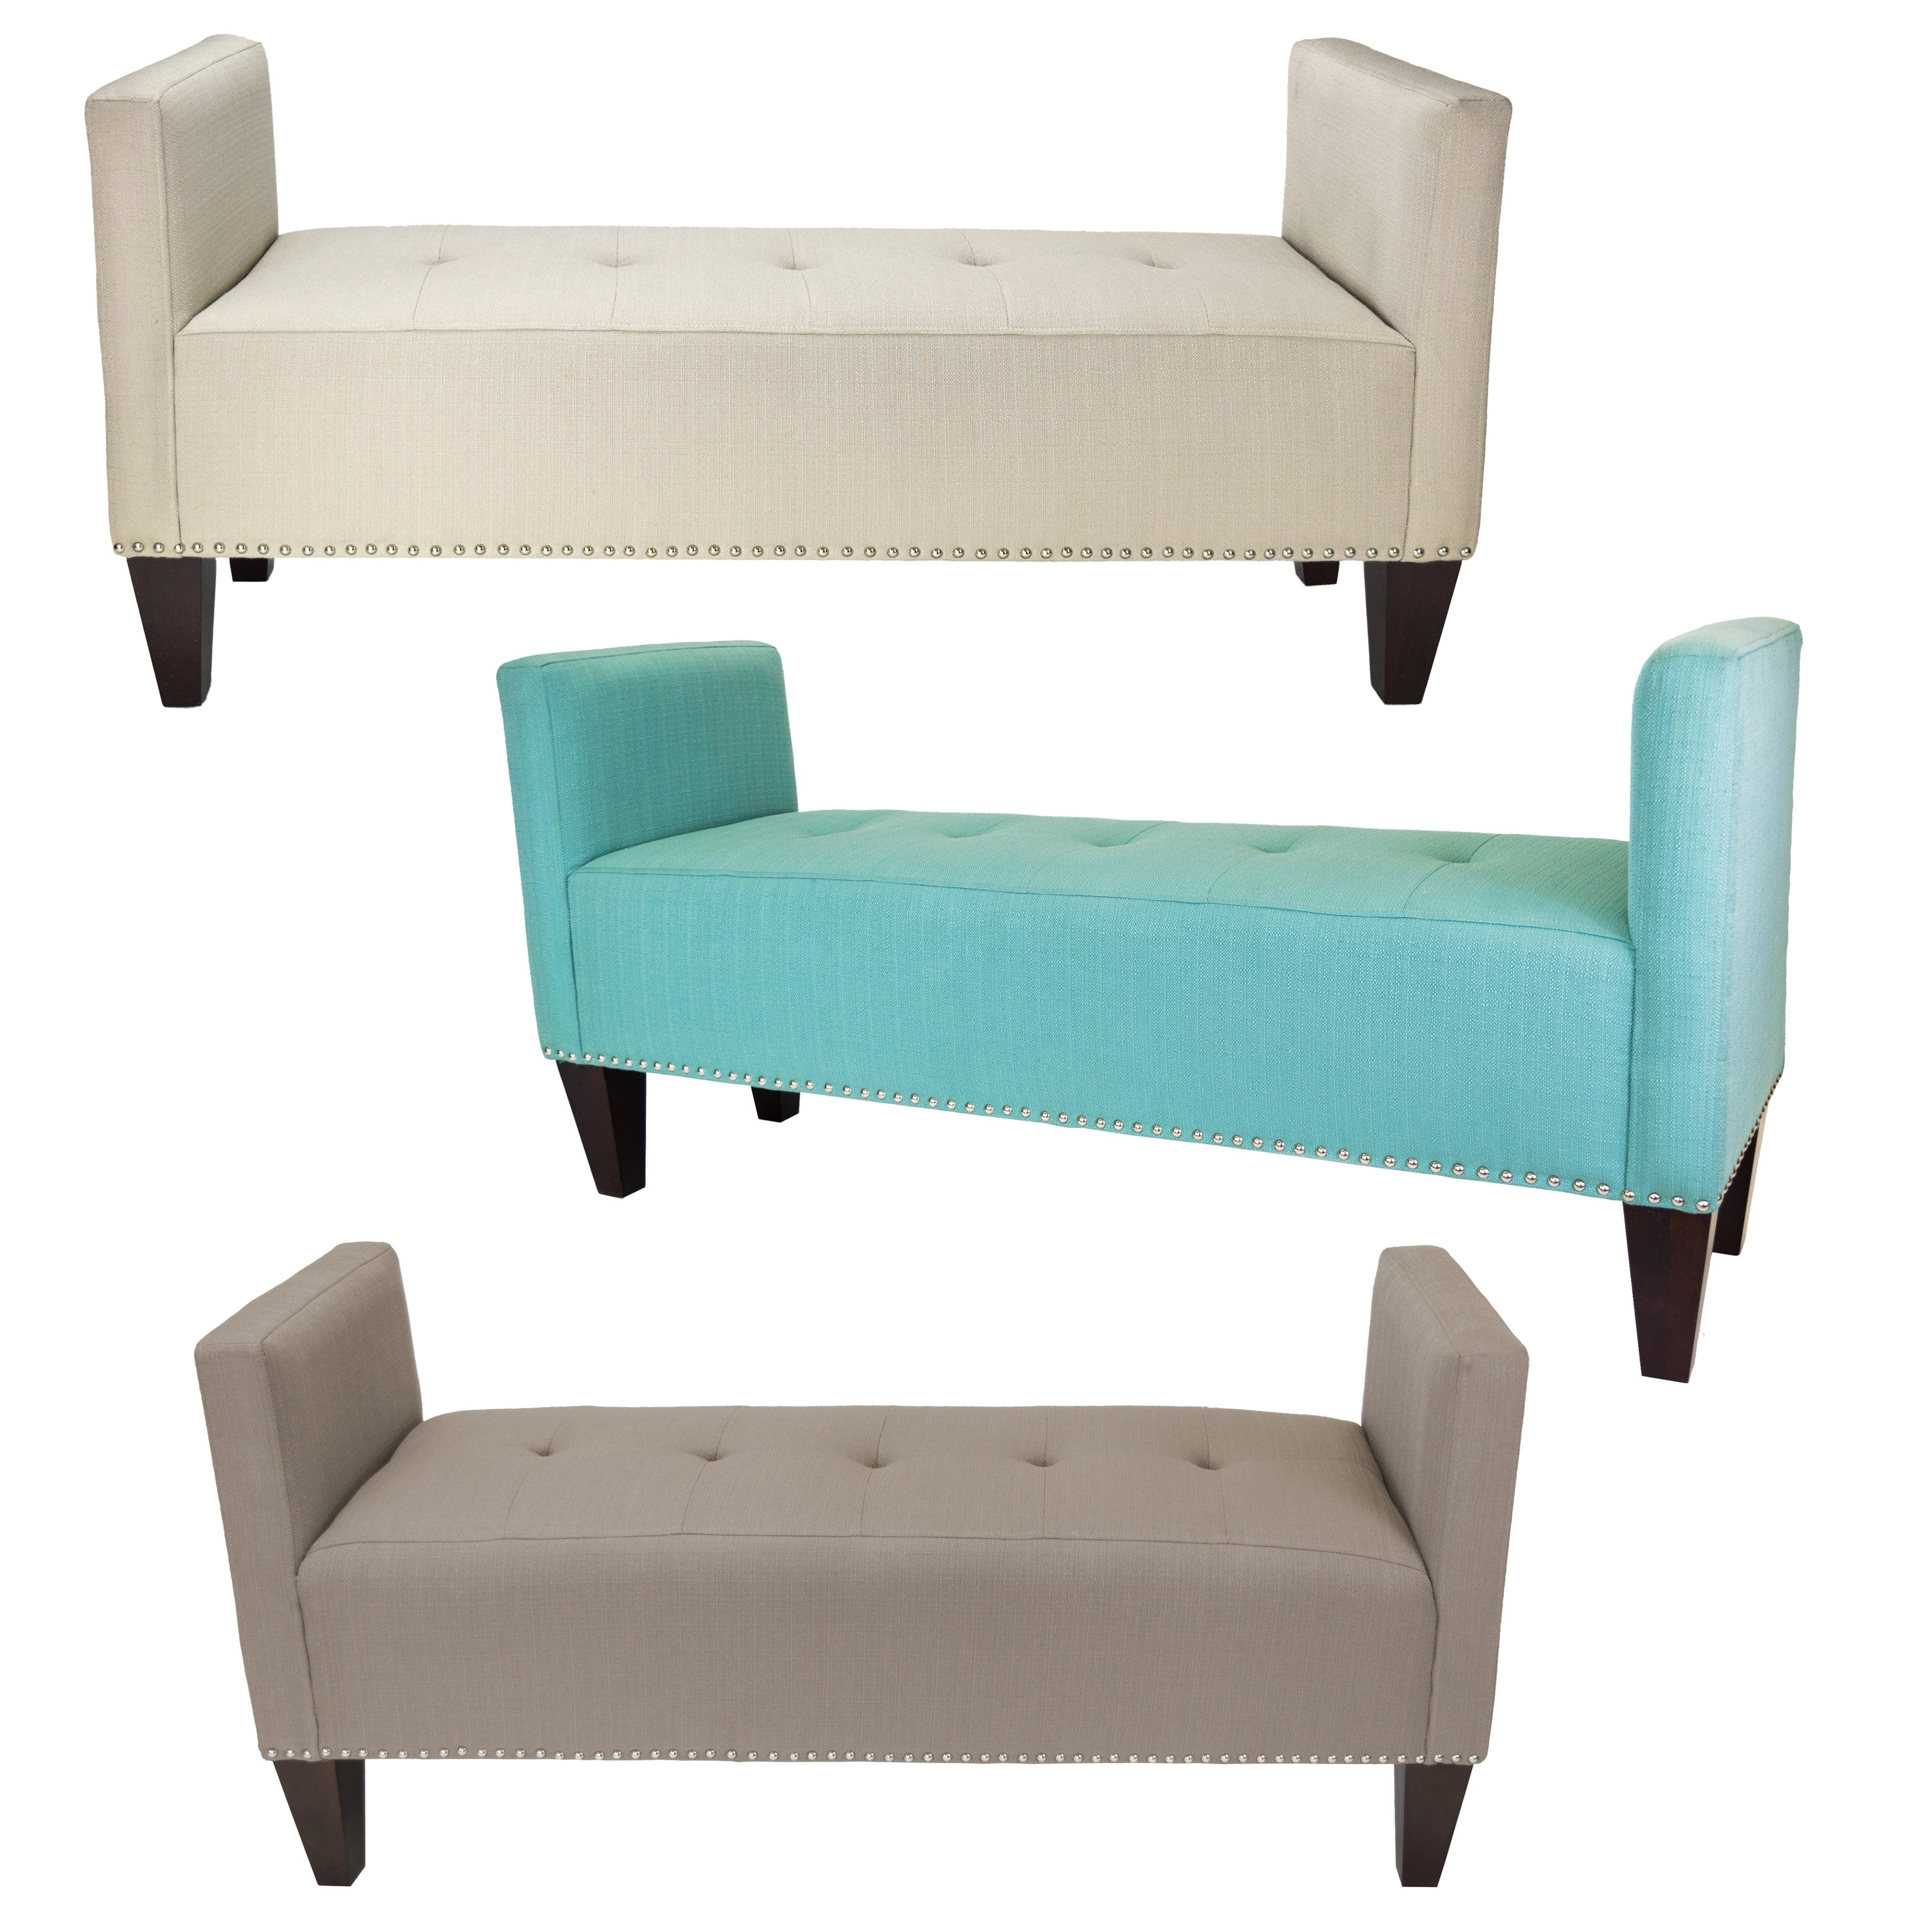 Nellie SACHI Upholstery Button Tufted & Nail Trim 2 Arms Bedroom Bench